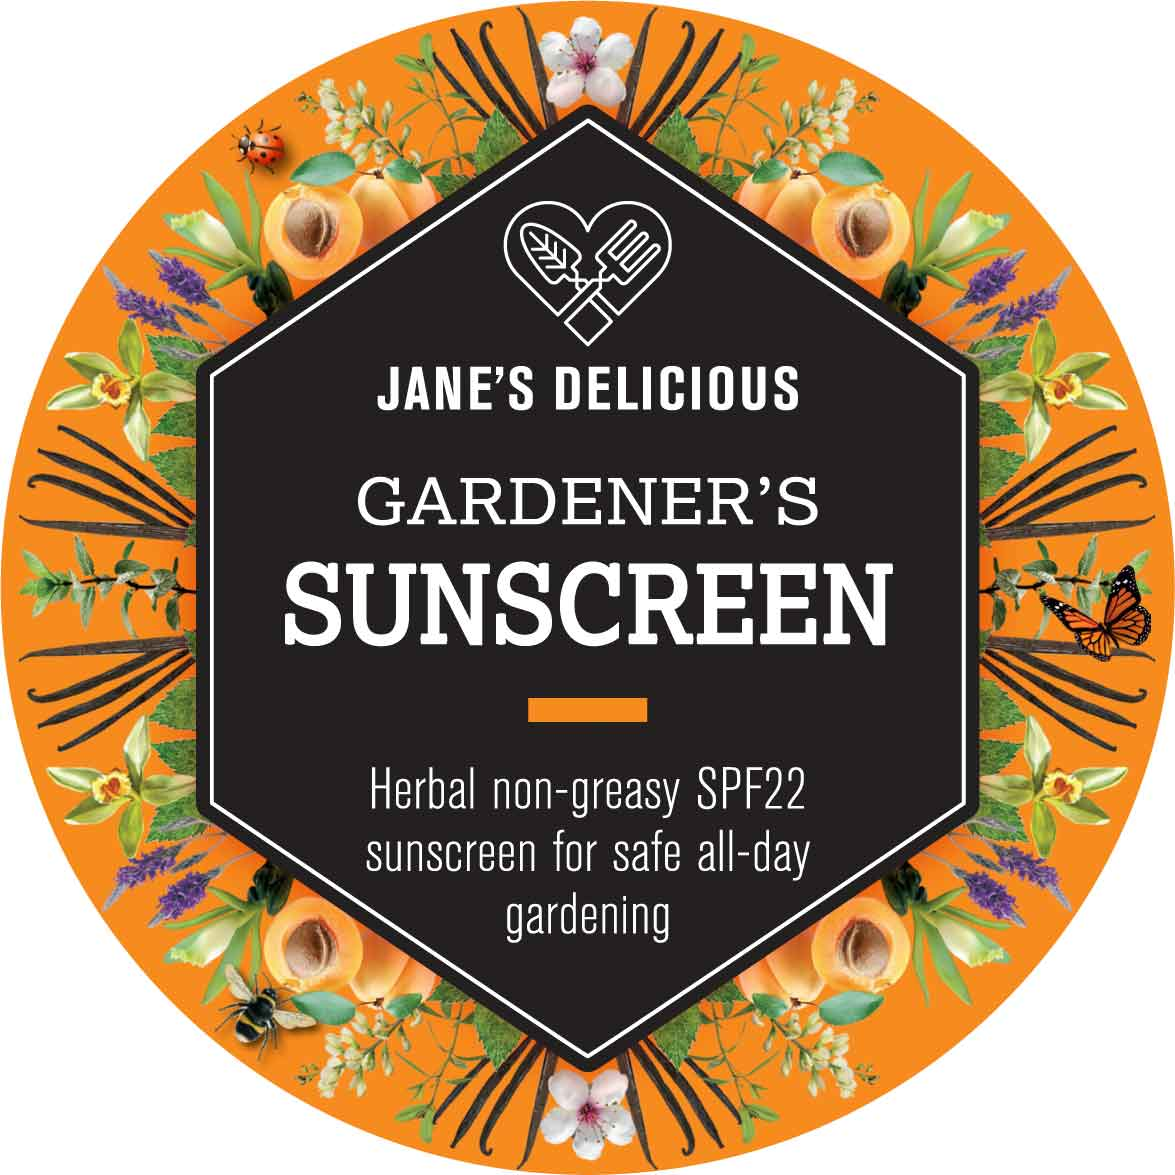 A non-greasy SPF22 sunscreen made with plant oils and natural zinc oxide.